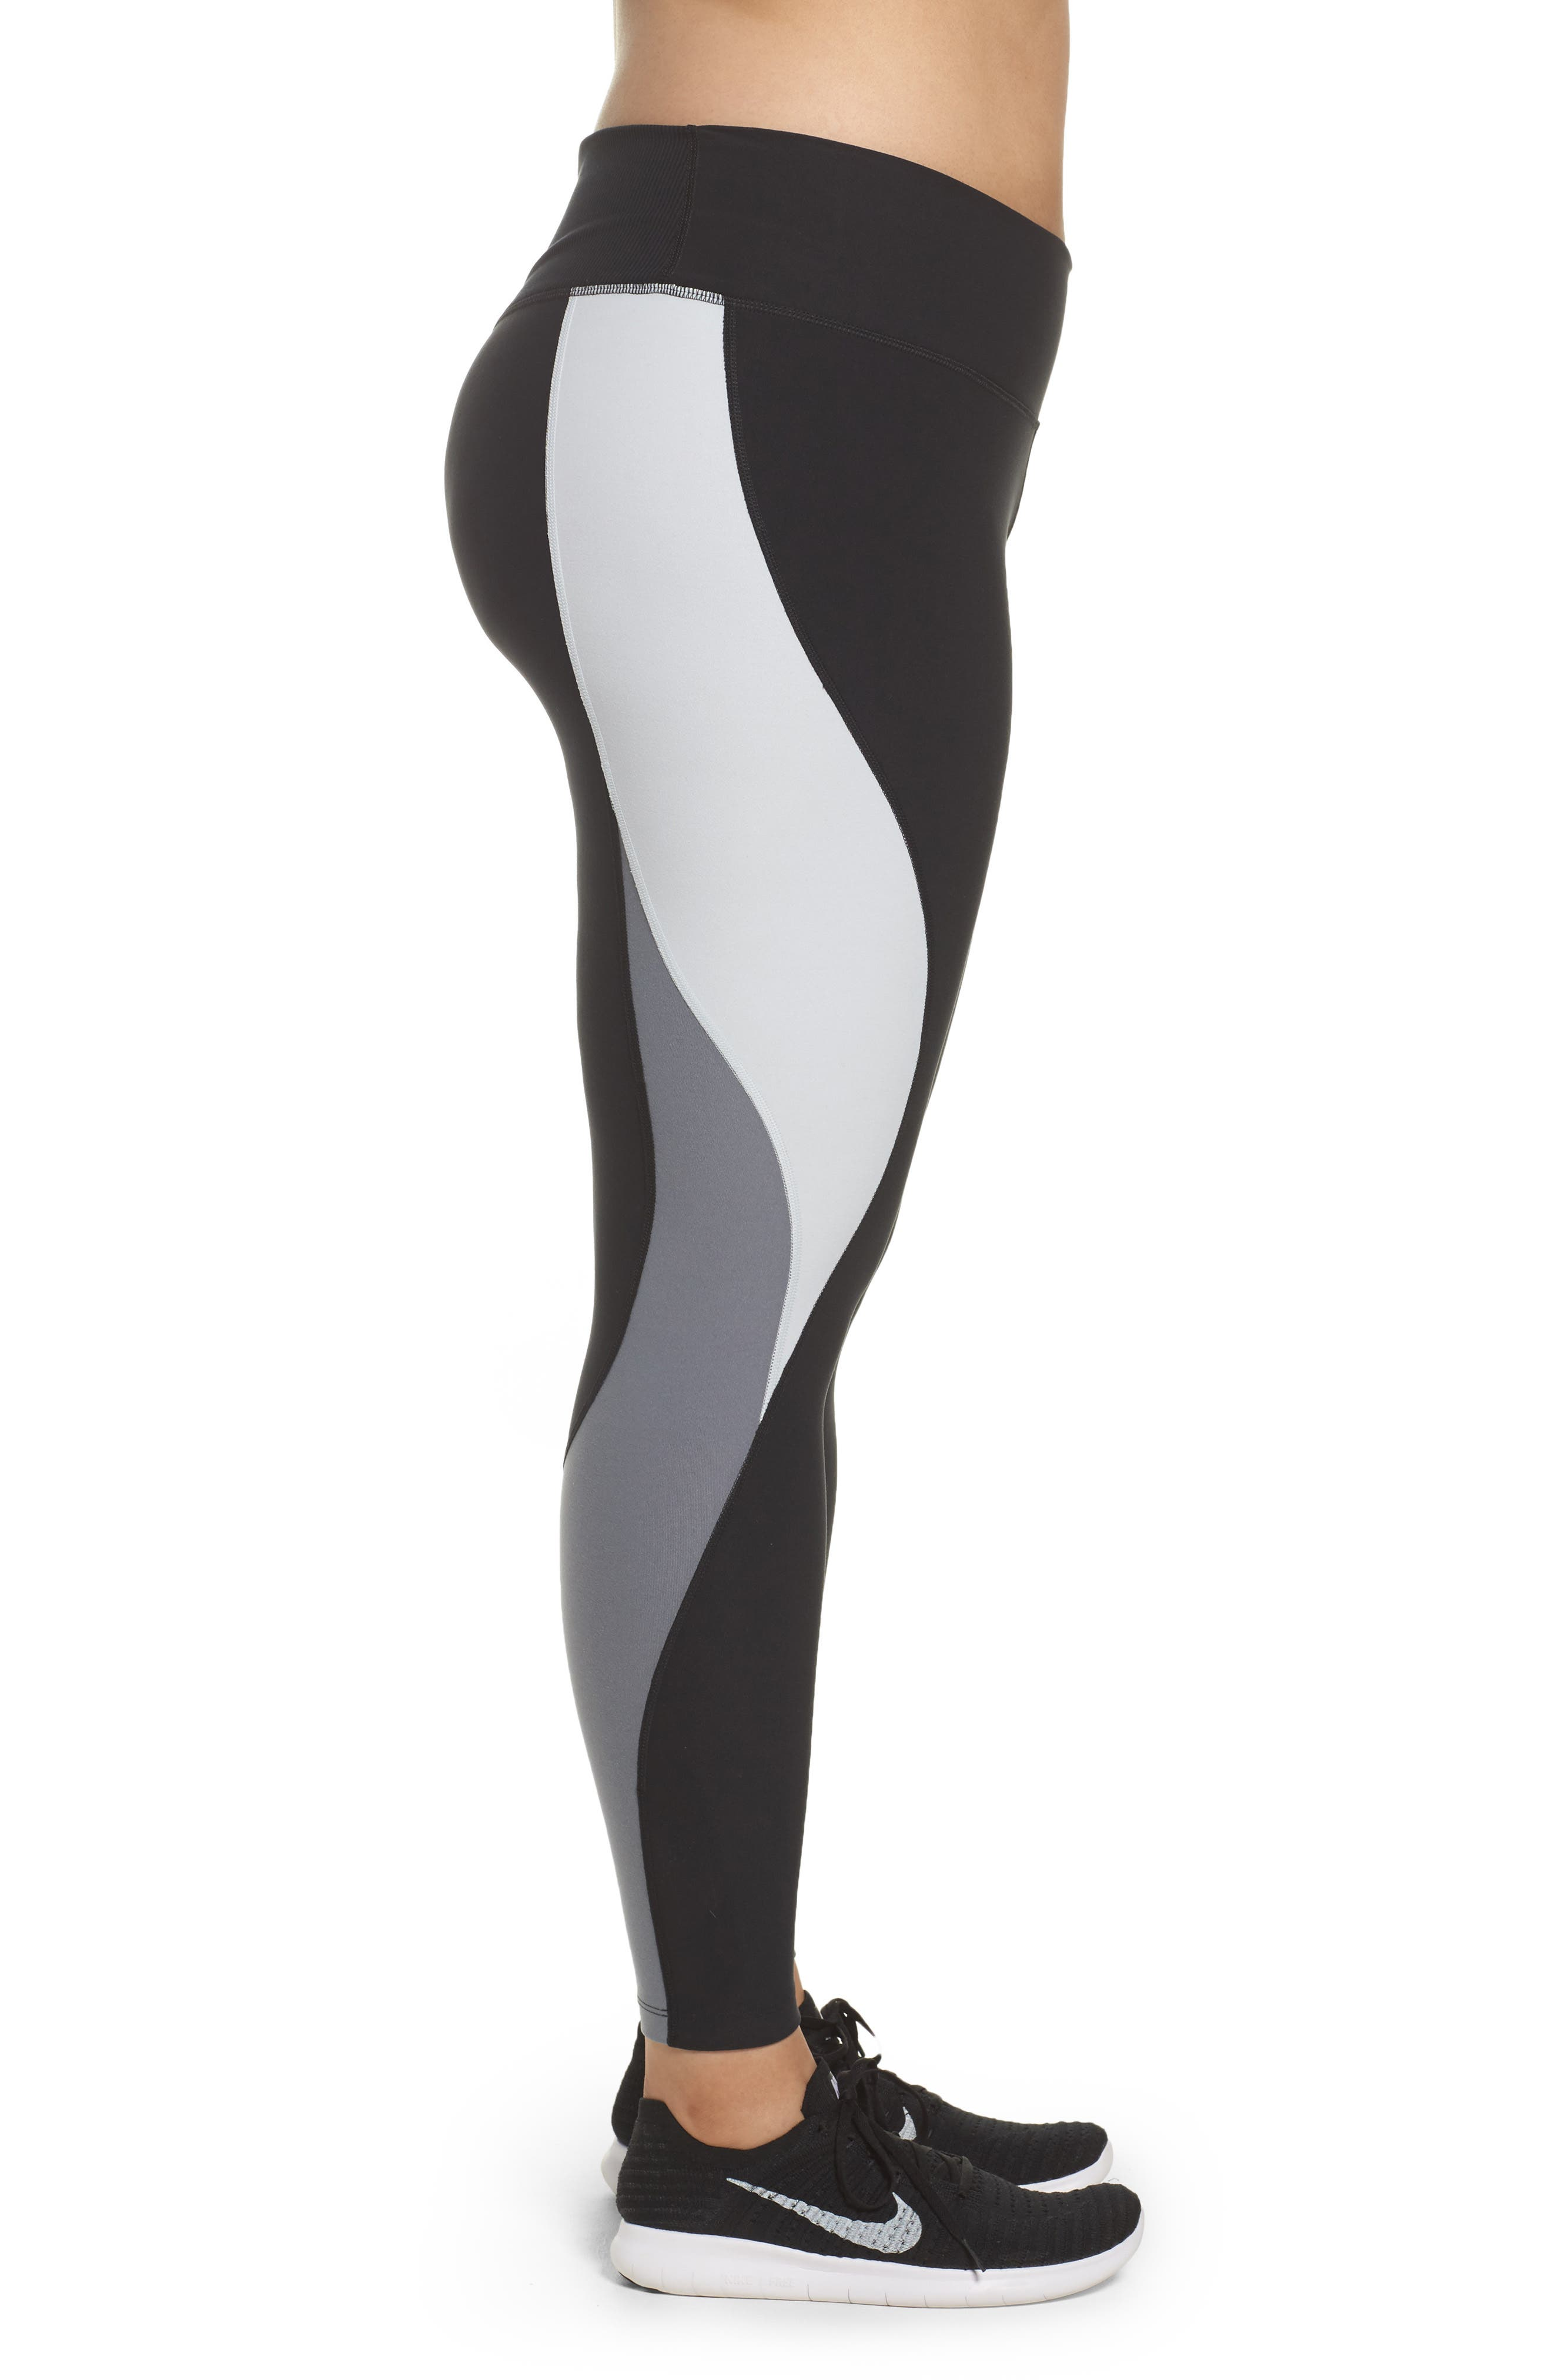 Power Legend Training Tights,                             Alternate thumbnail 3, color,                             Black/ Platinum/ Grey